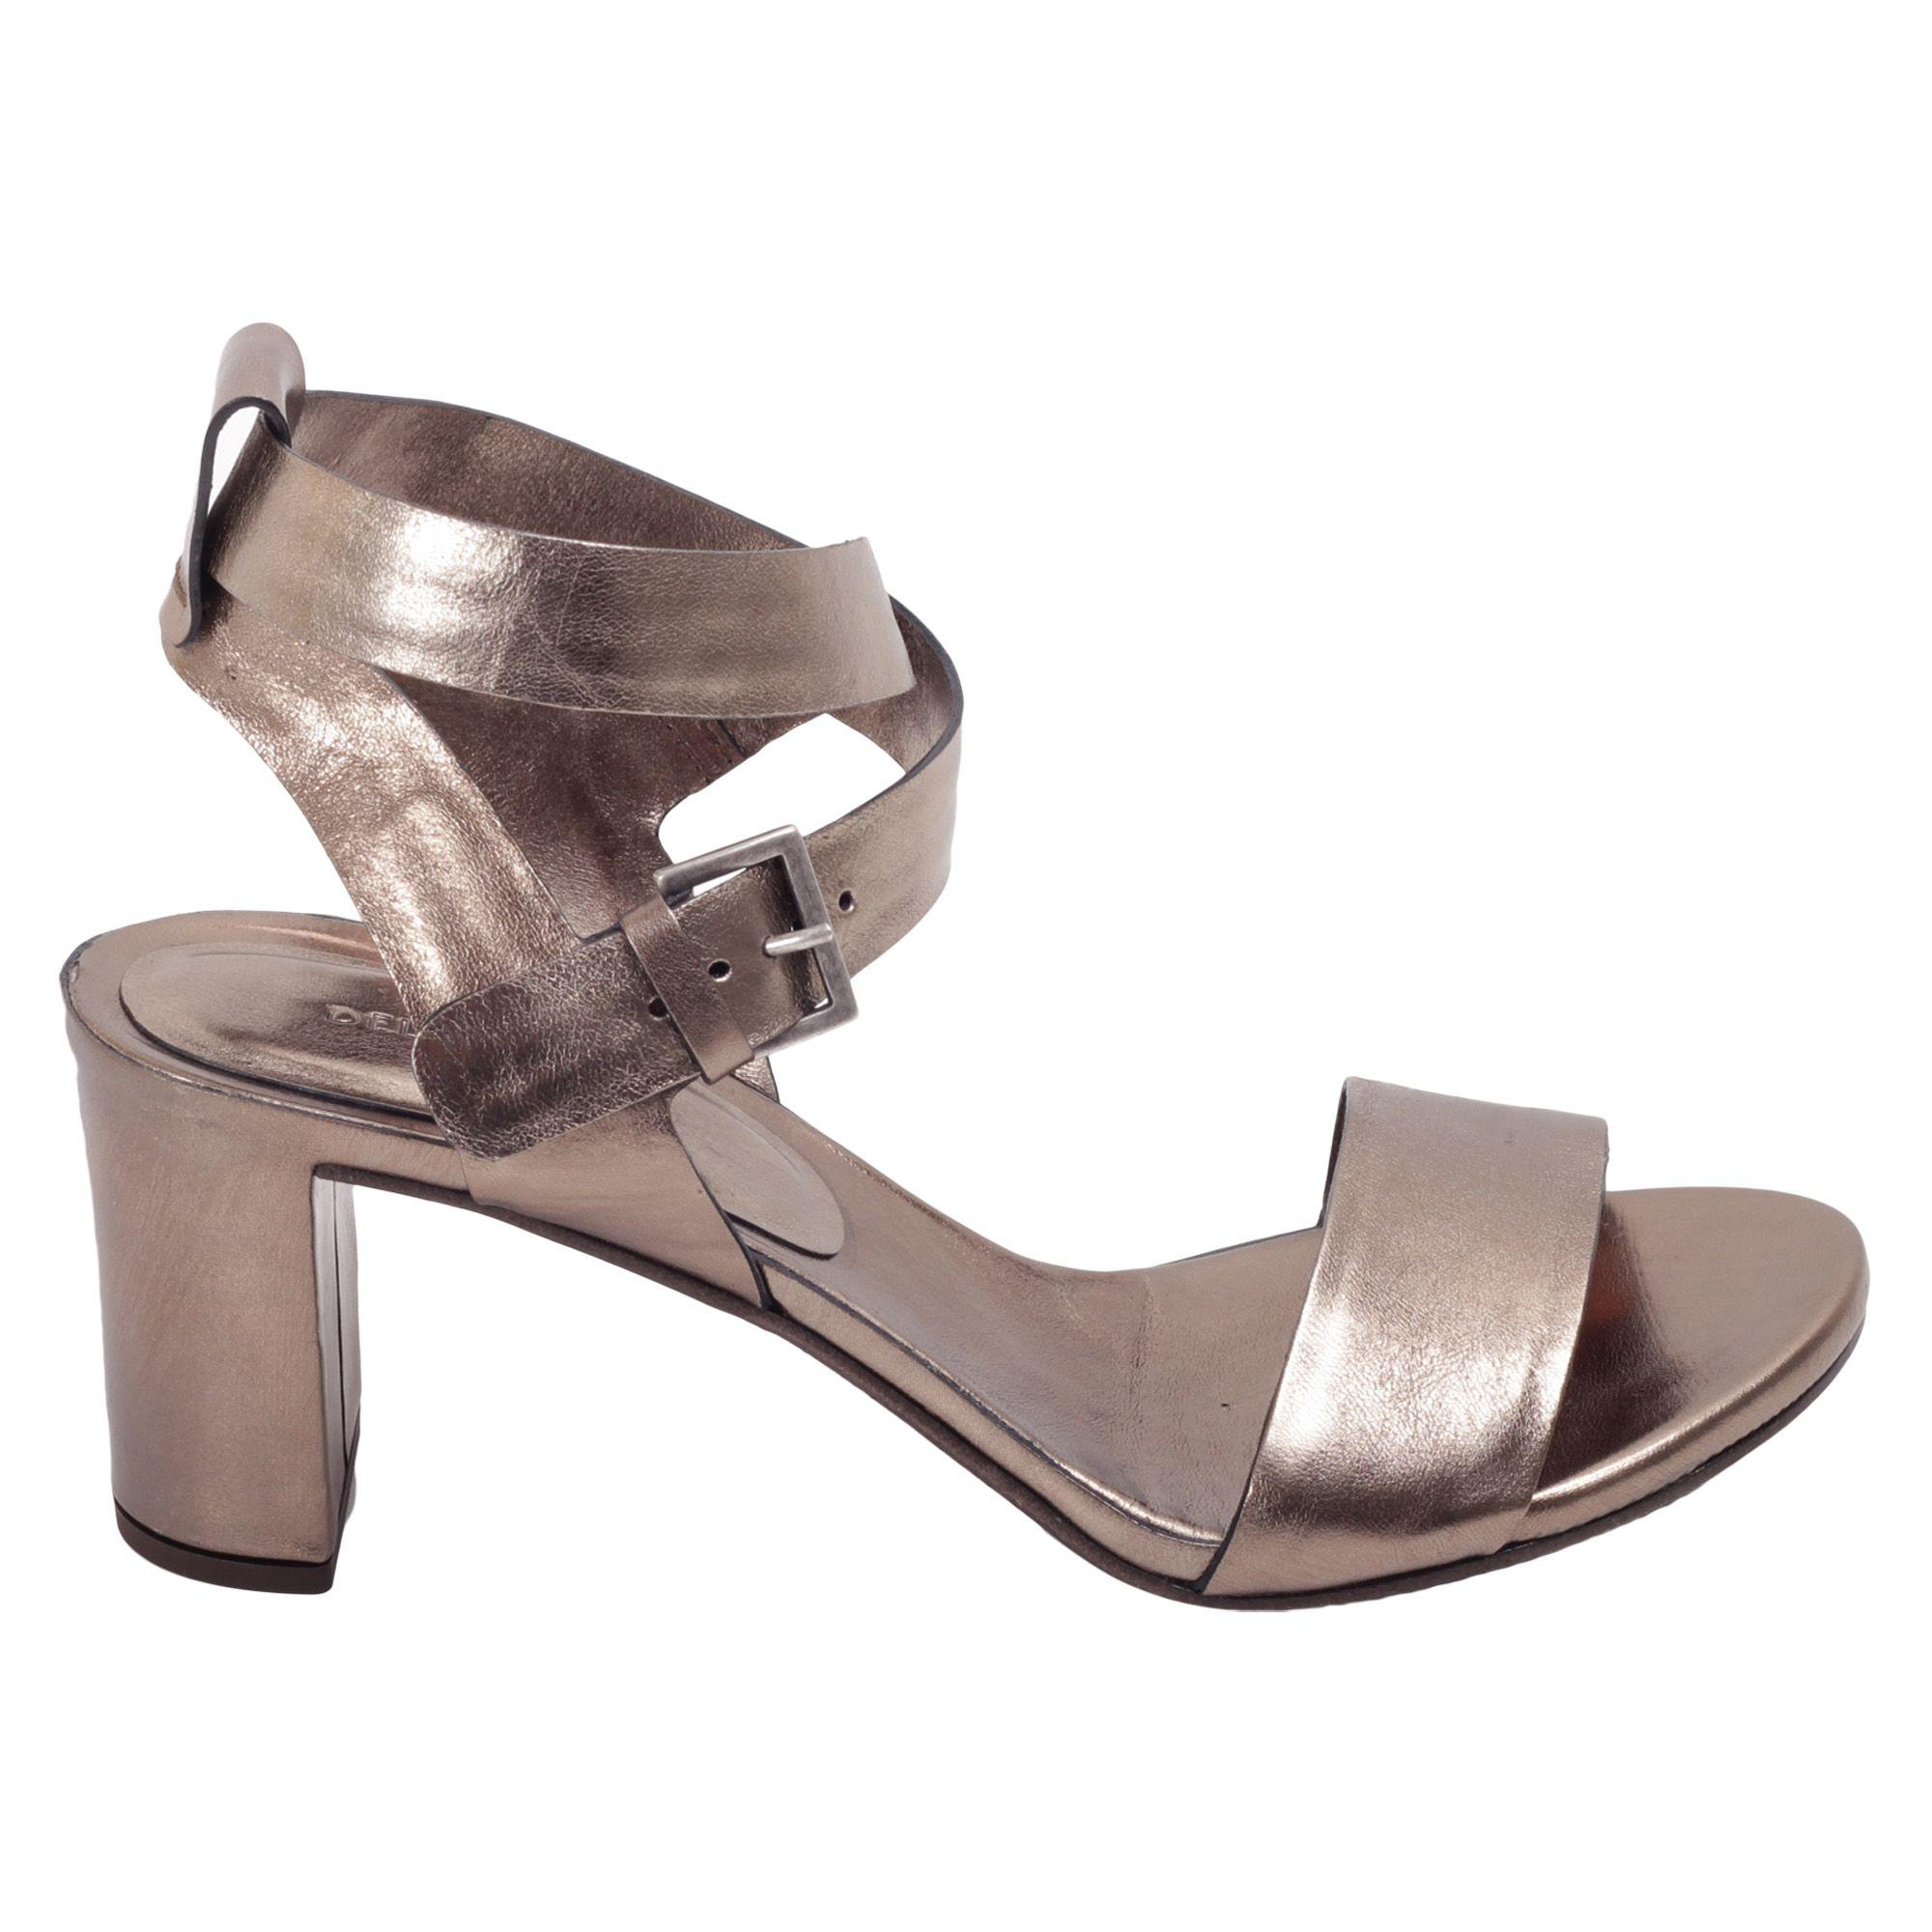 Roberto Del Carlo Leather Heeled Shoes In Bronze